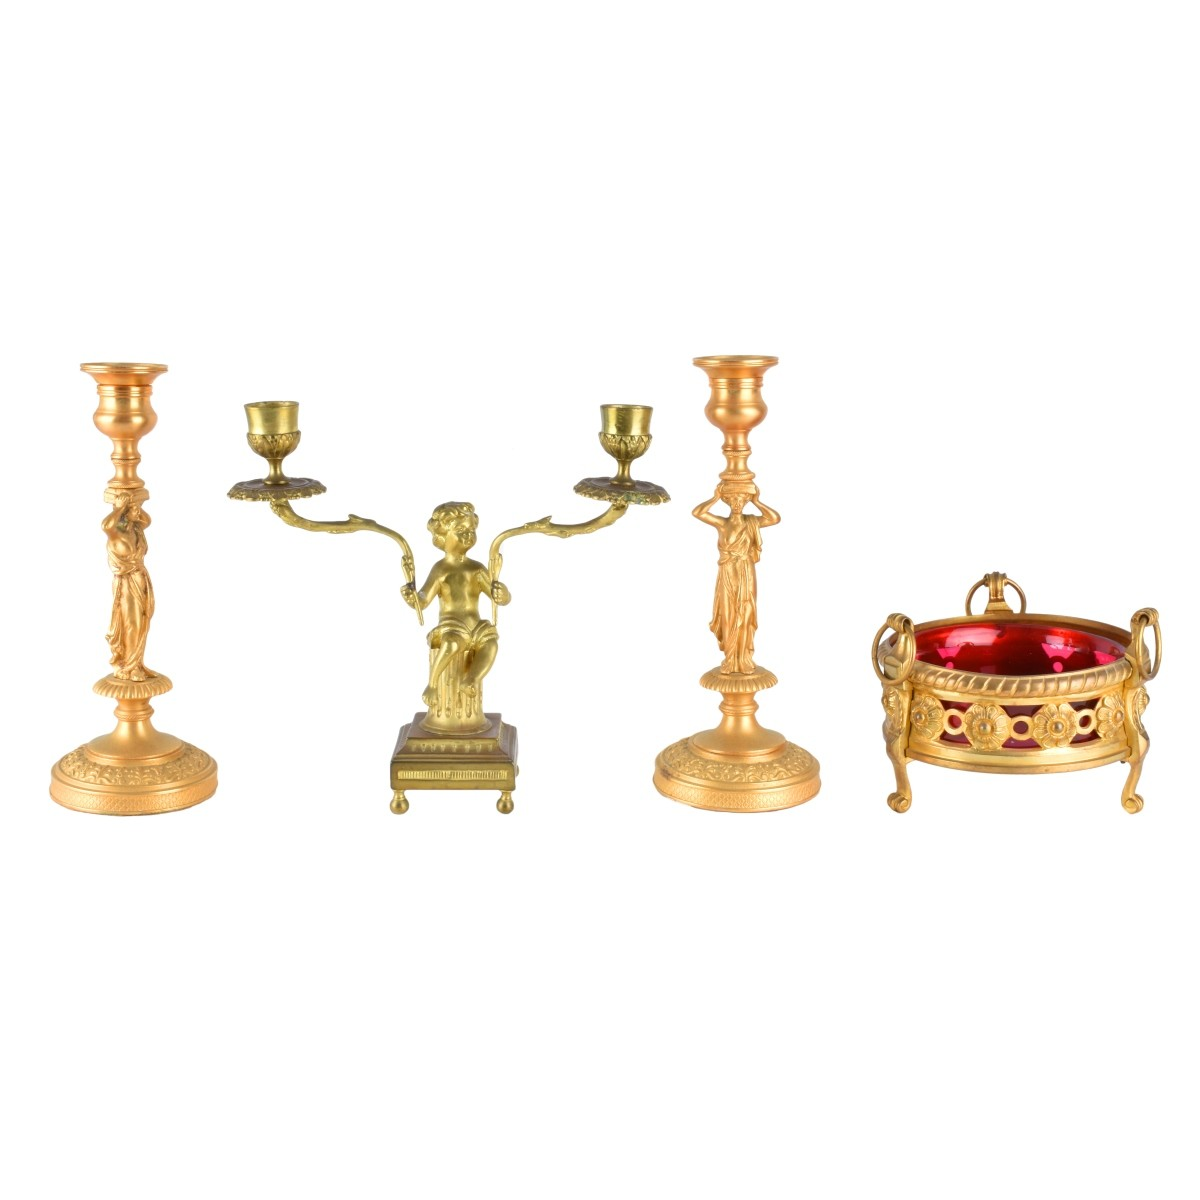 Four (4) Antique Gilt Bronze Tableware